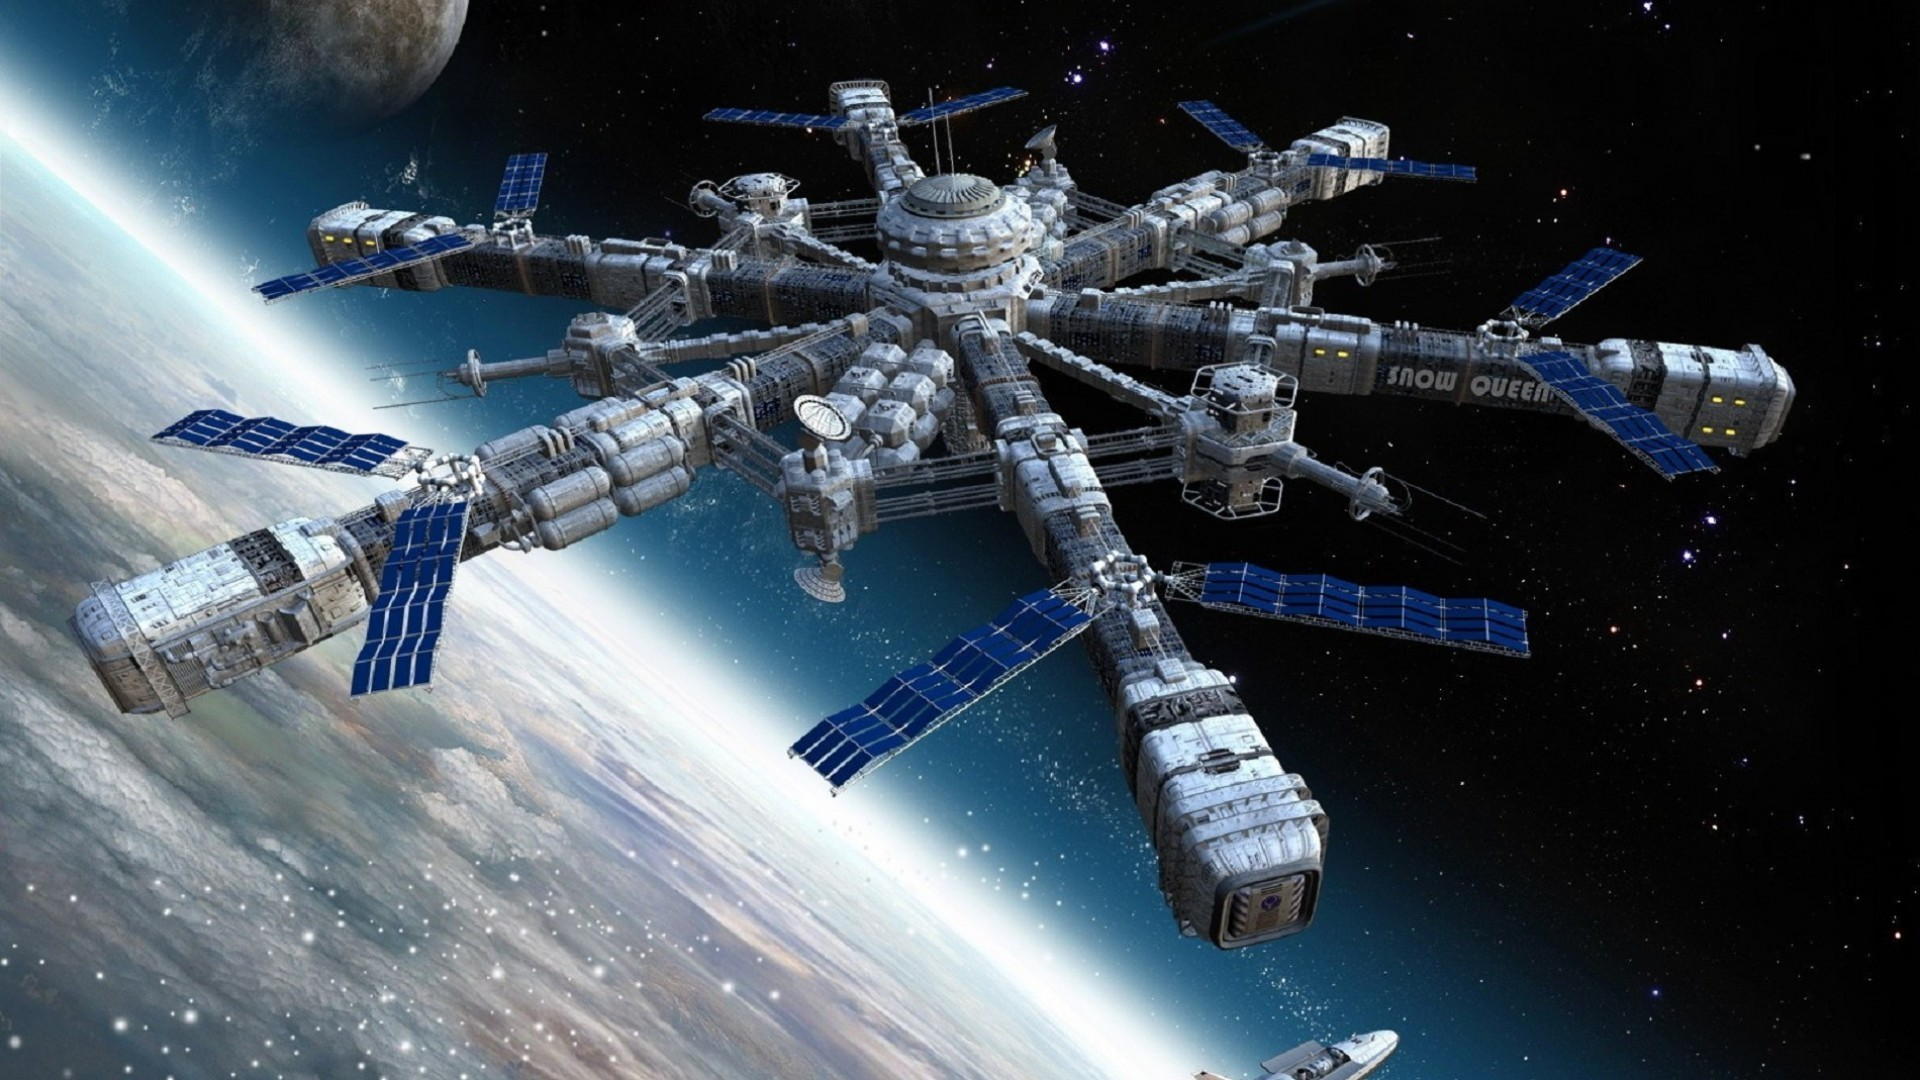 Explore Art Station, Space Station, and more!